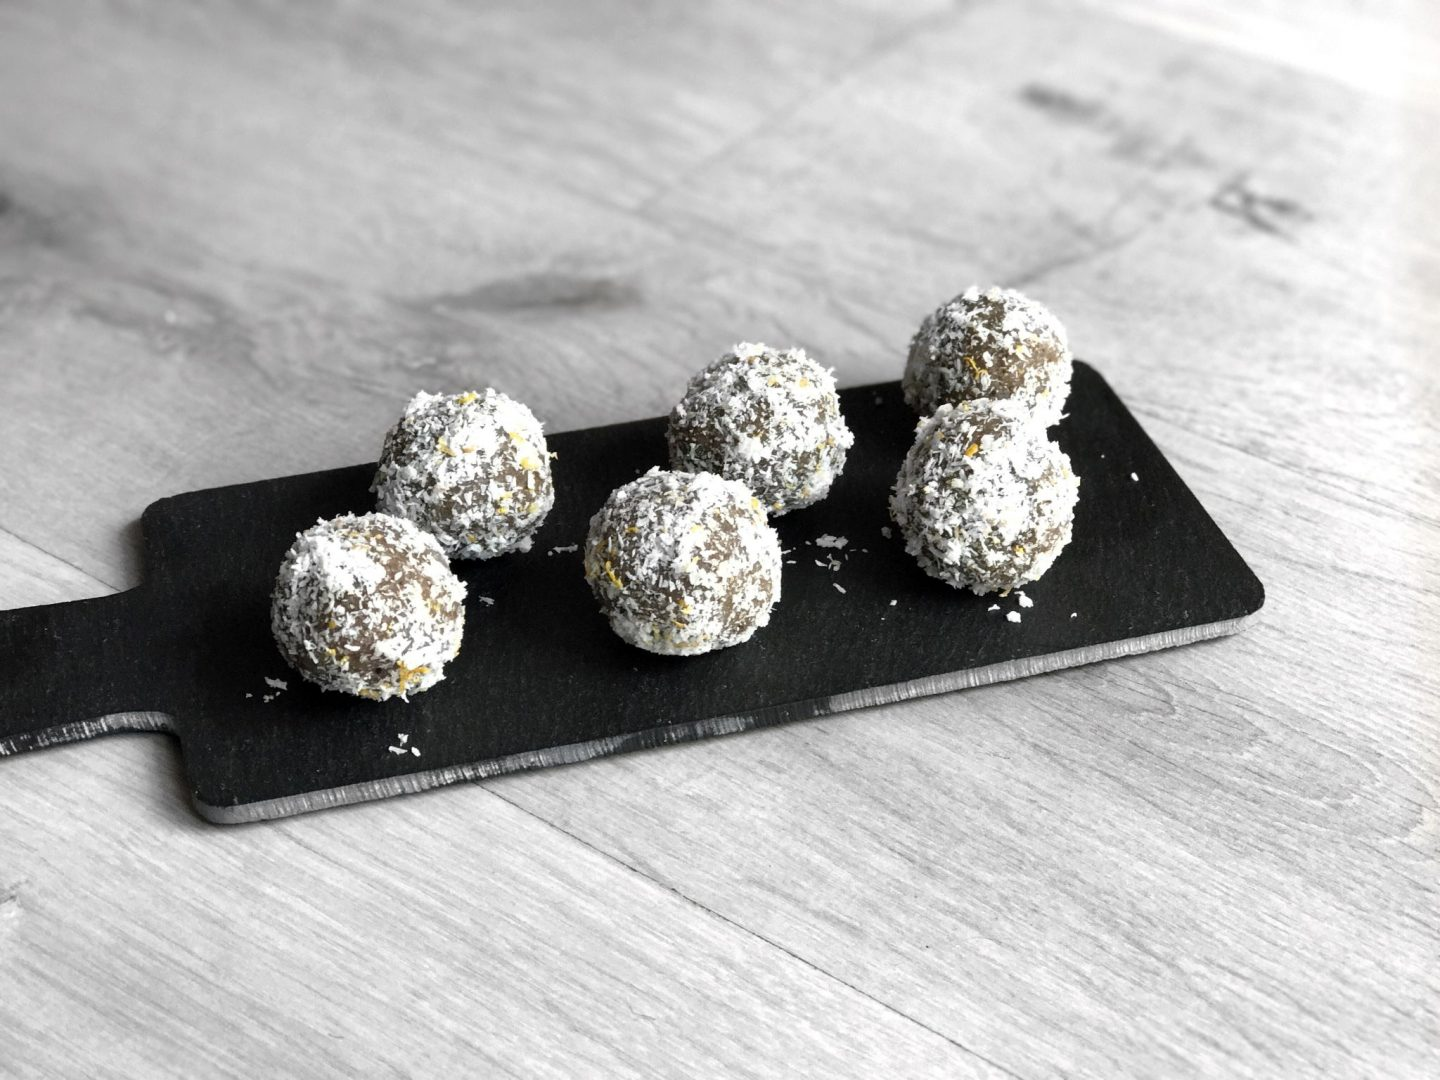 Lemon Coconut Bliss Energy Balls